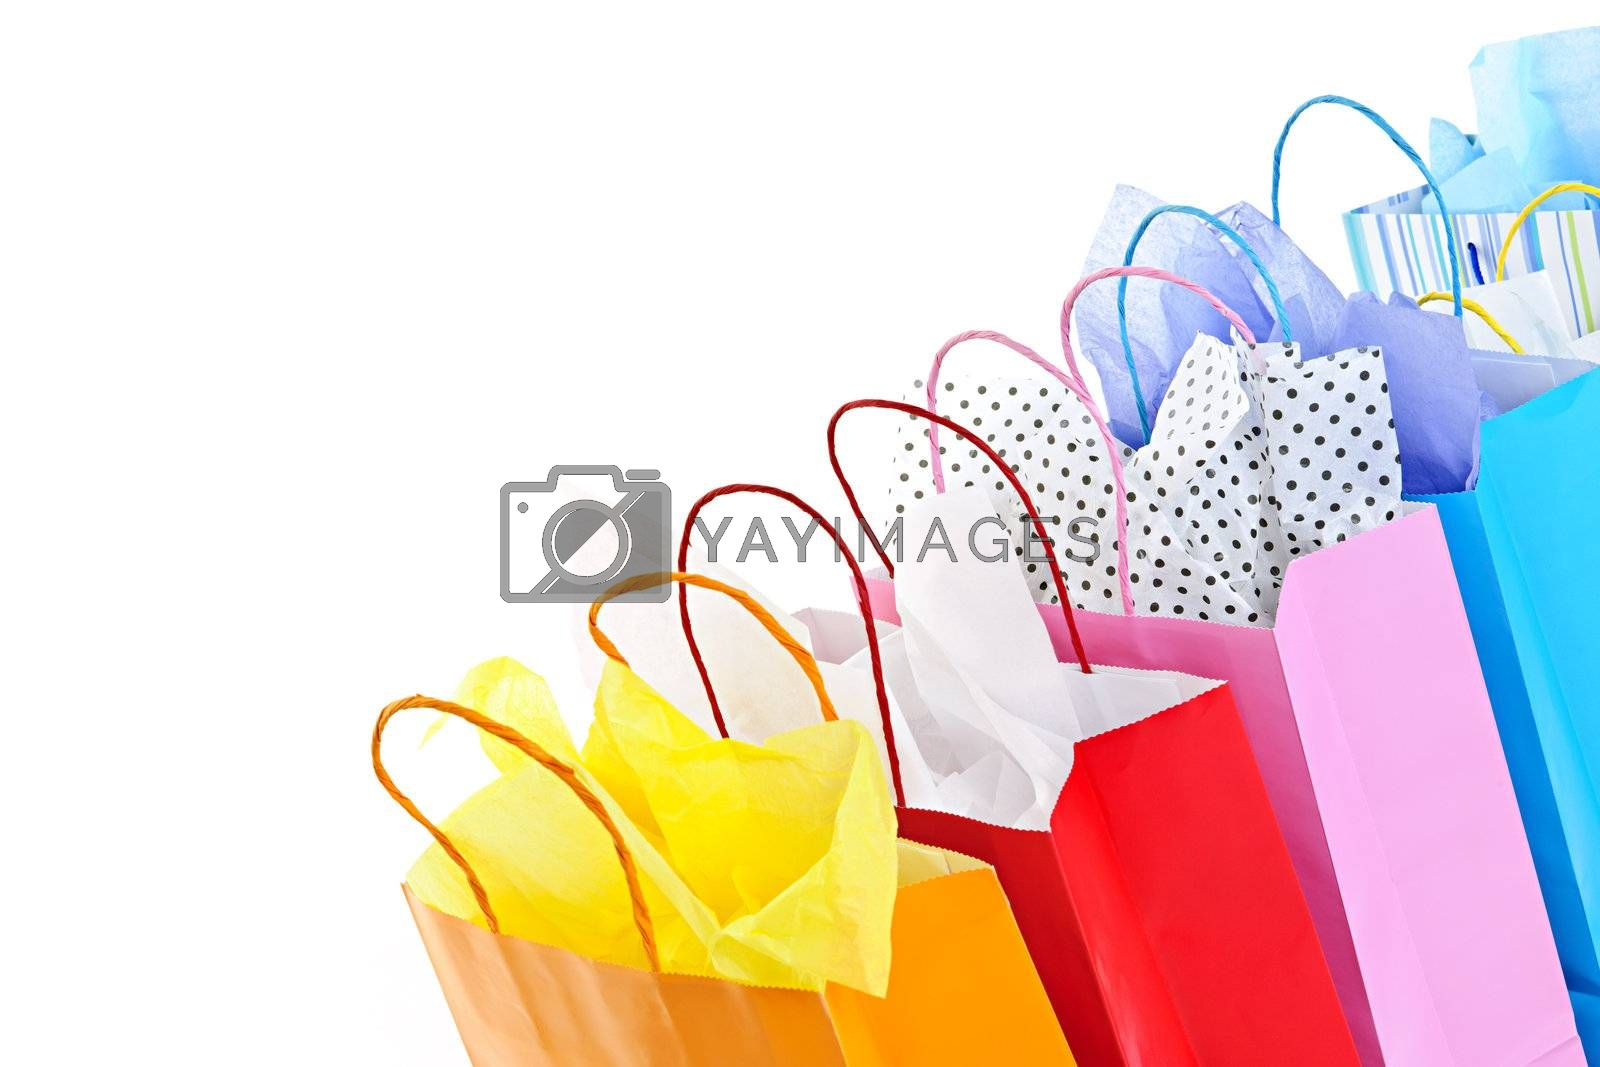 Shopping bags by elenathewise